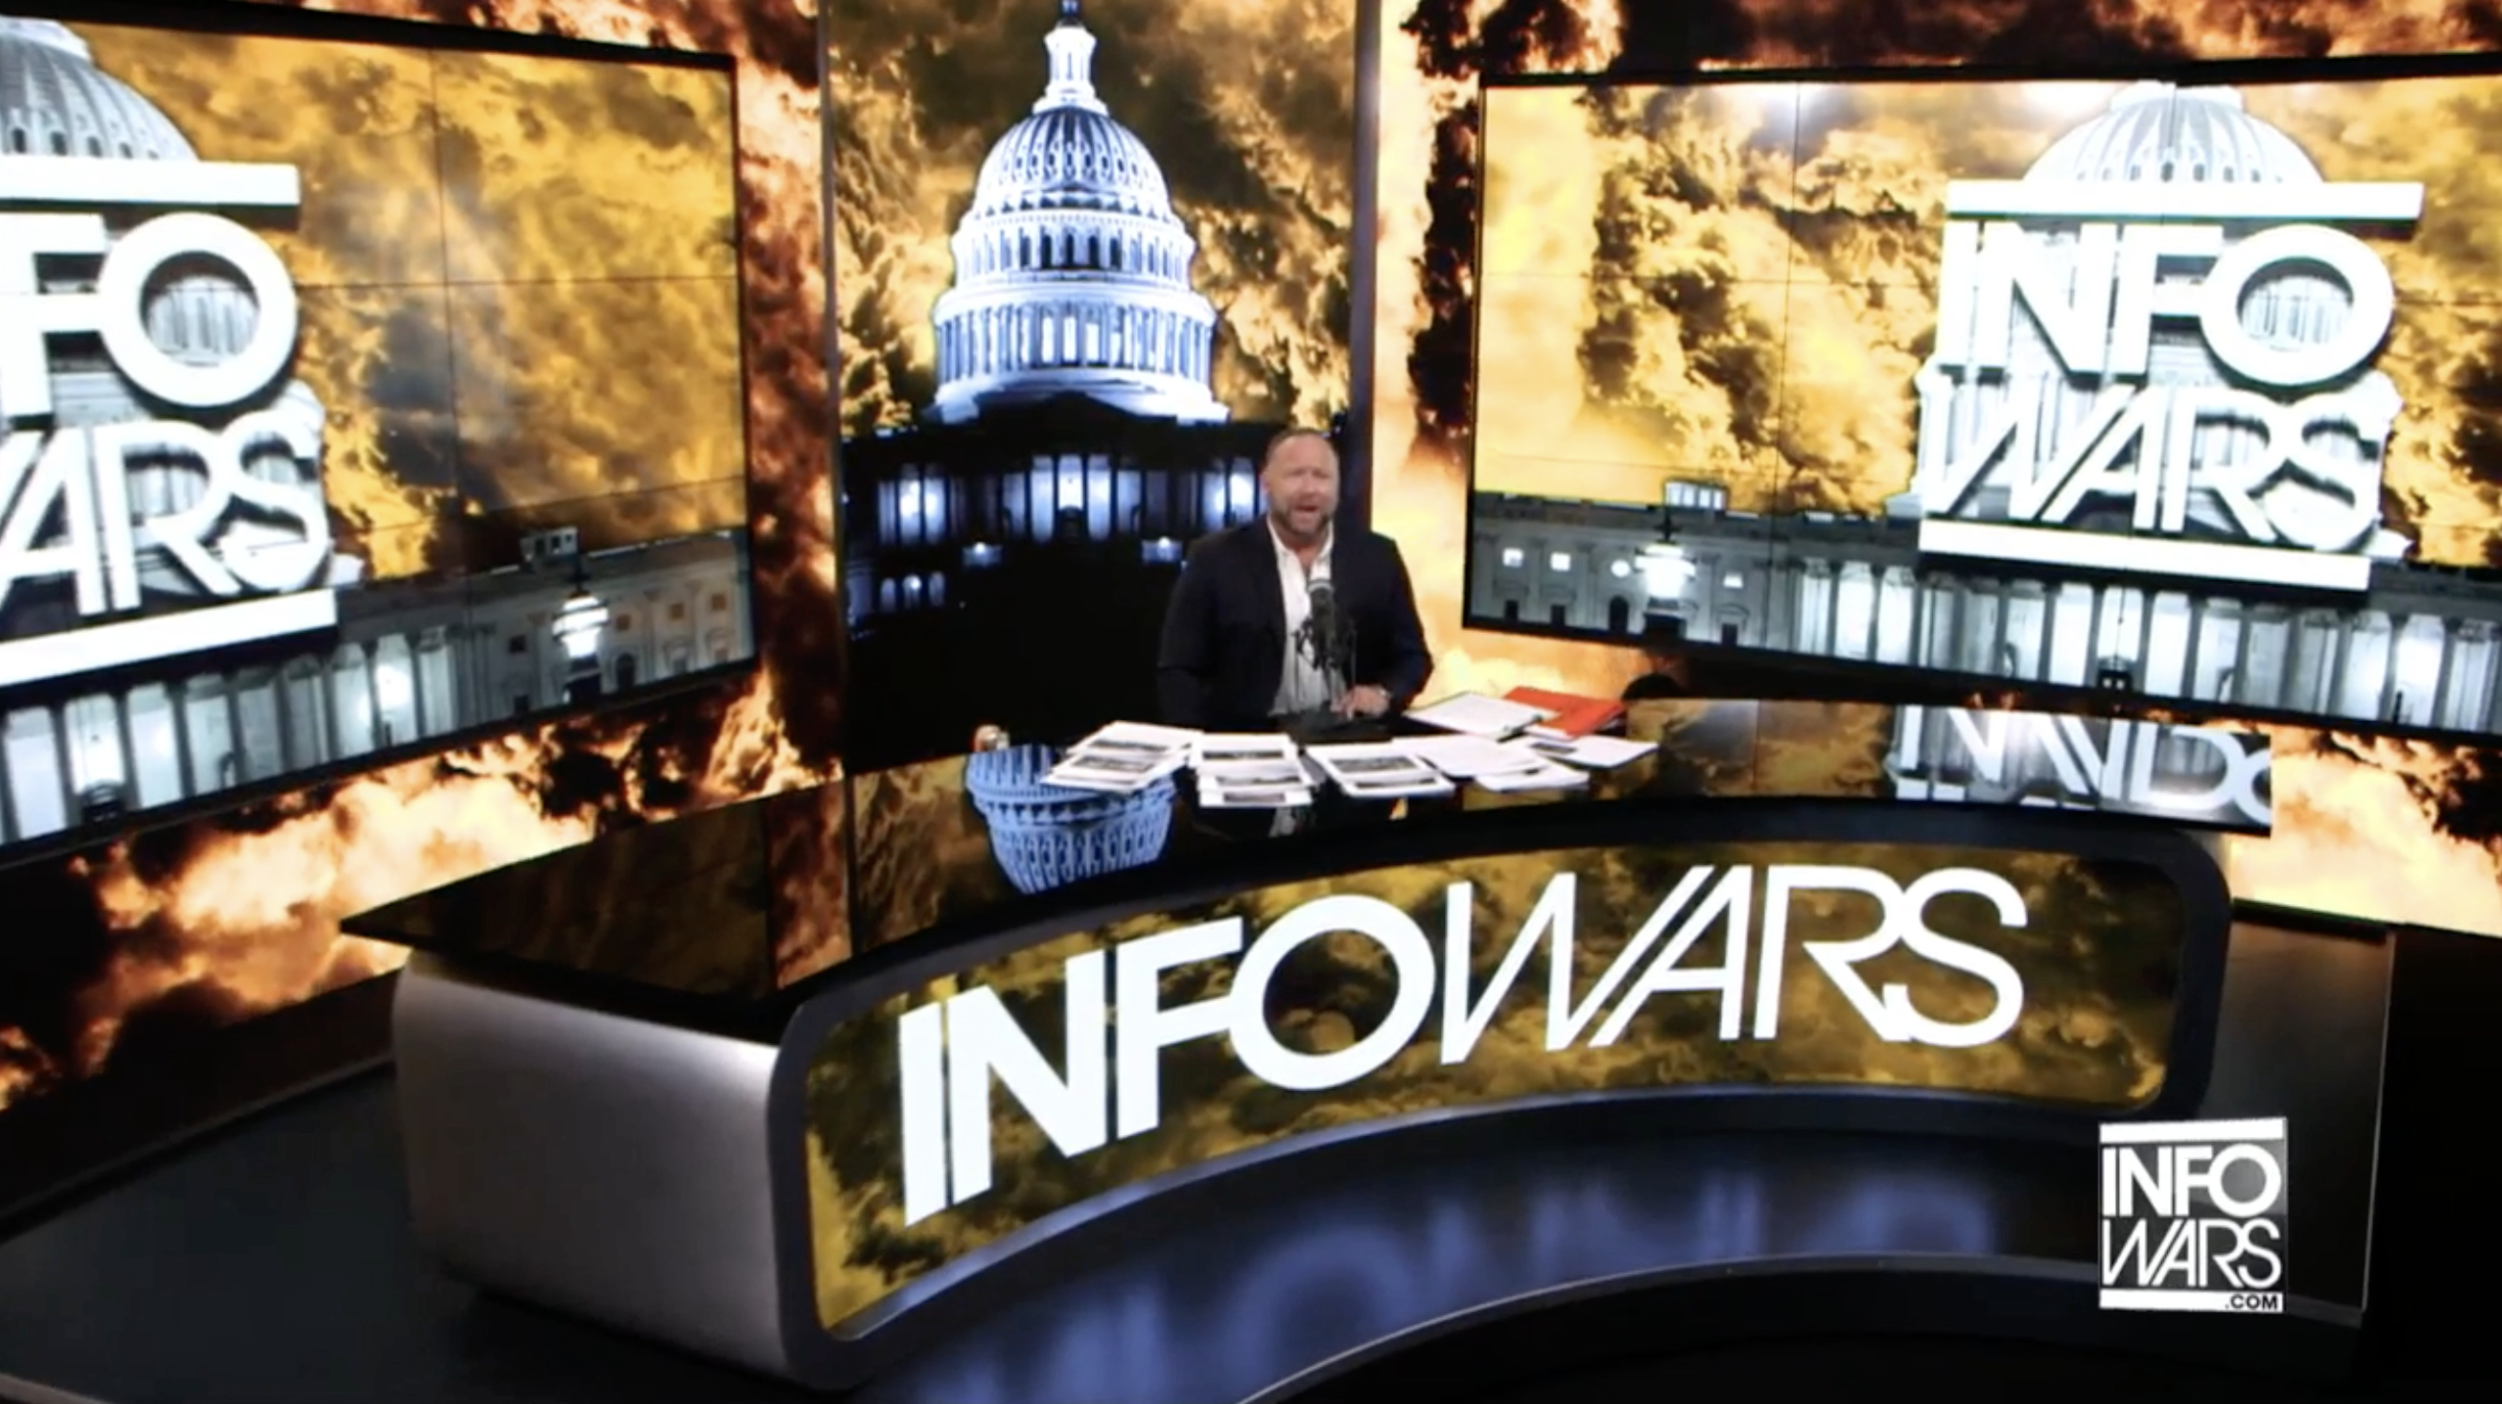 Alex Jones Infowars 2 14 2020